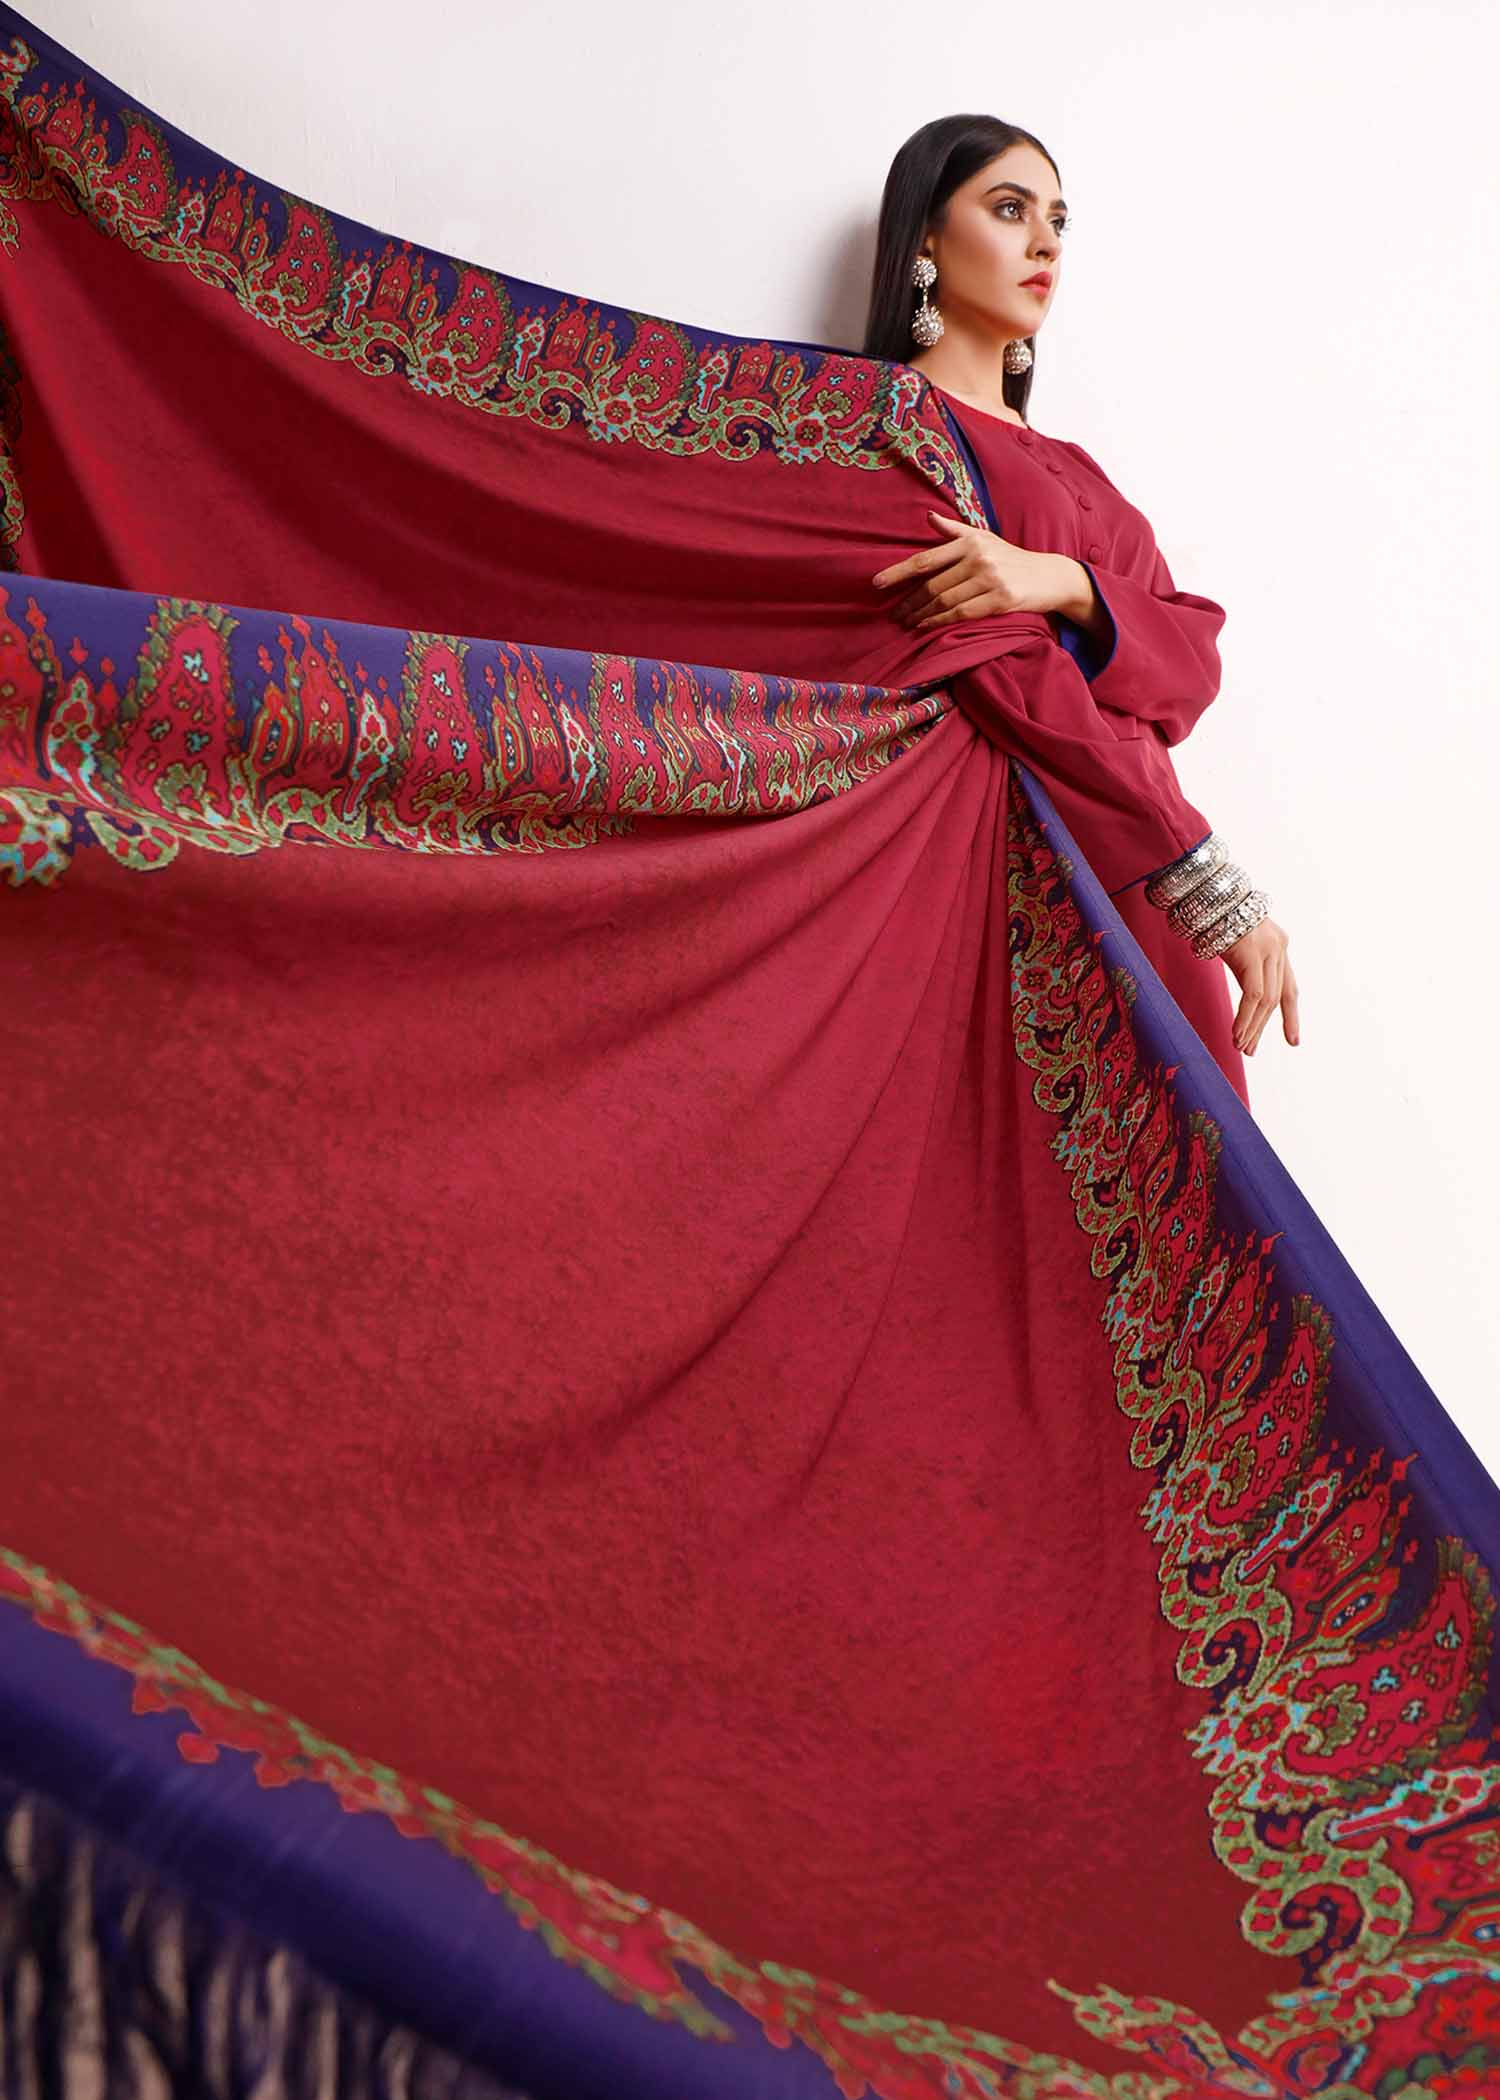 ASTRAKHAN SHAWL / SUIT